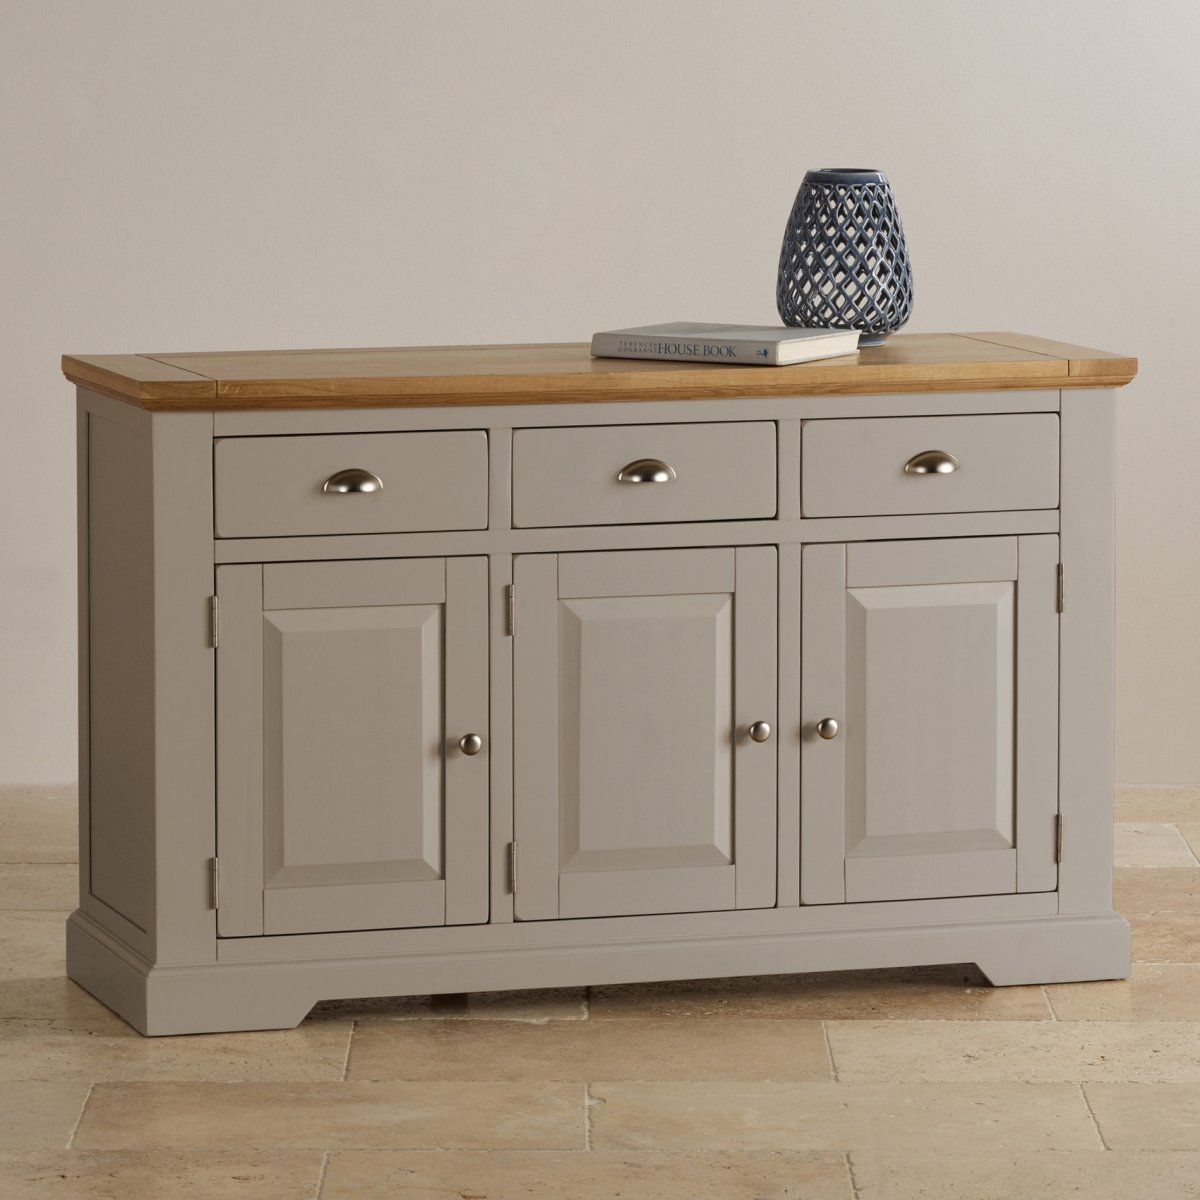 Sorry, your browser does not support this video. - Natural Oak And Light Grey Painted Large Sideboard.